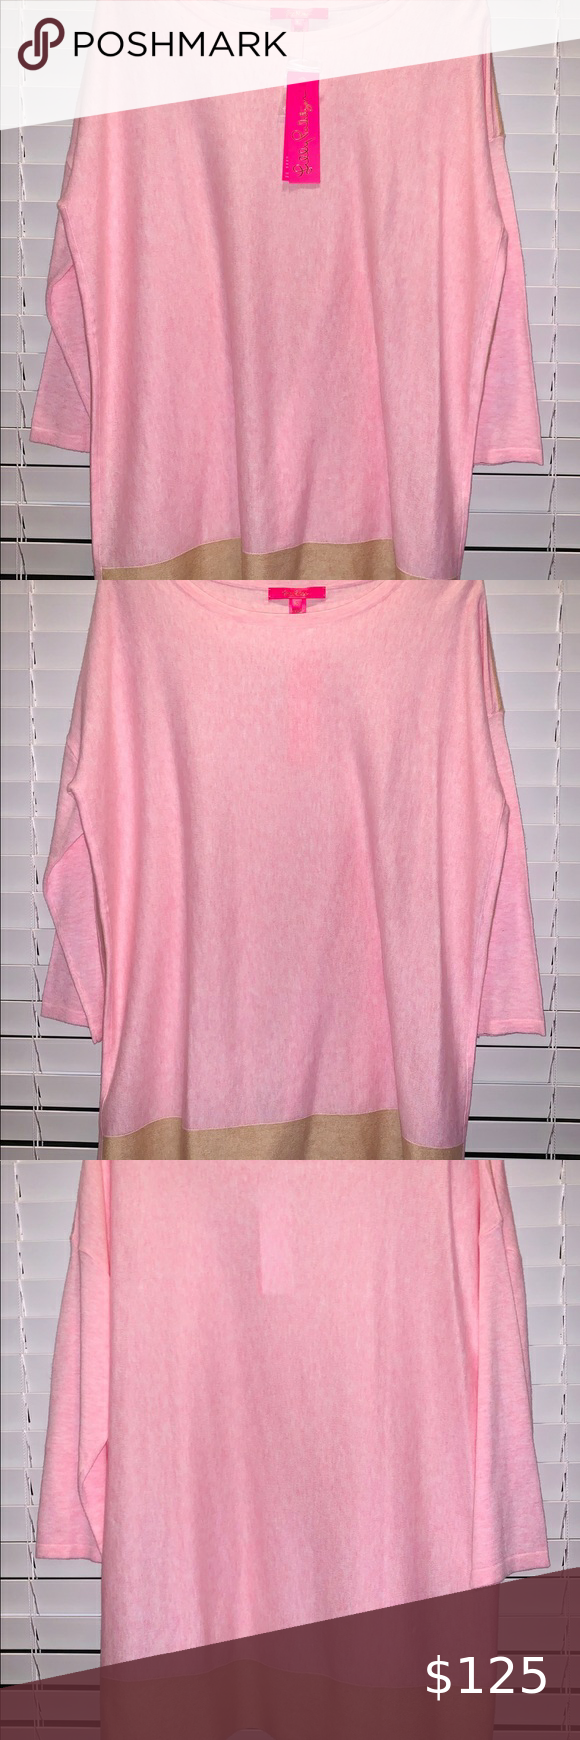 c0a38eba73557a0a9dca858bb1e45d15 - How To Get A Pink Tint Out Of White Clothes